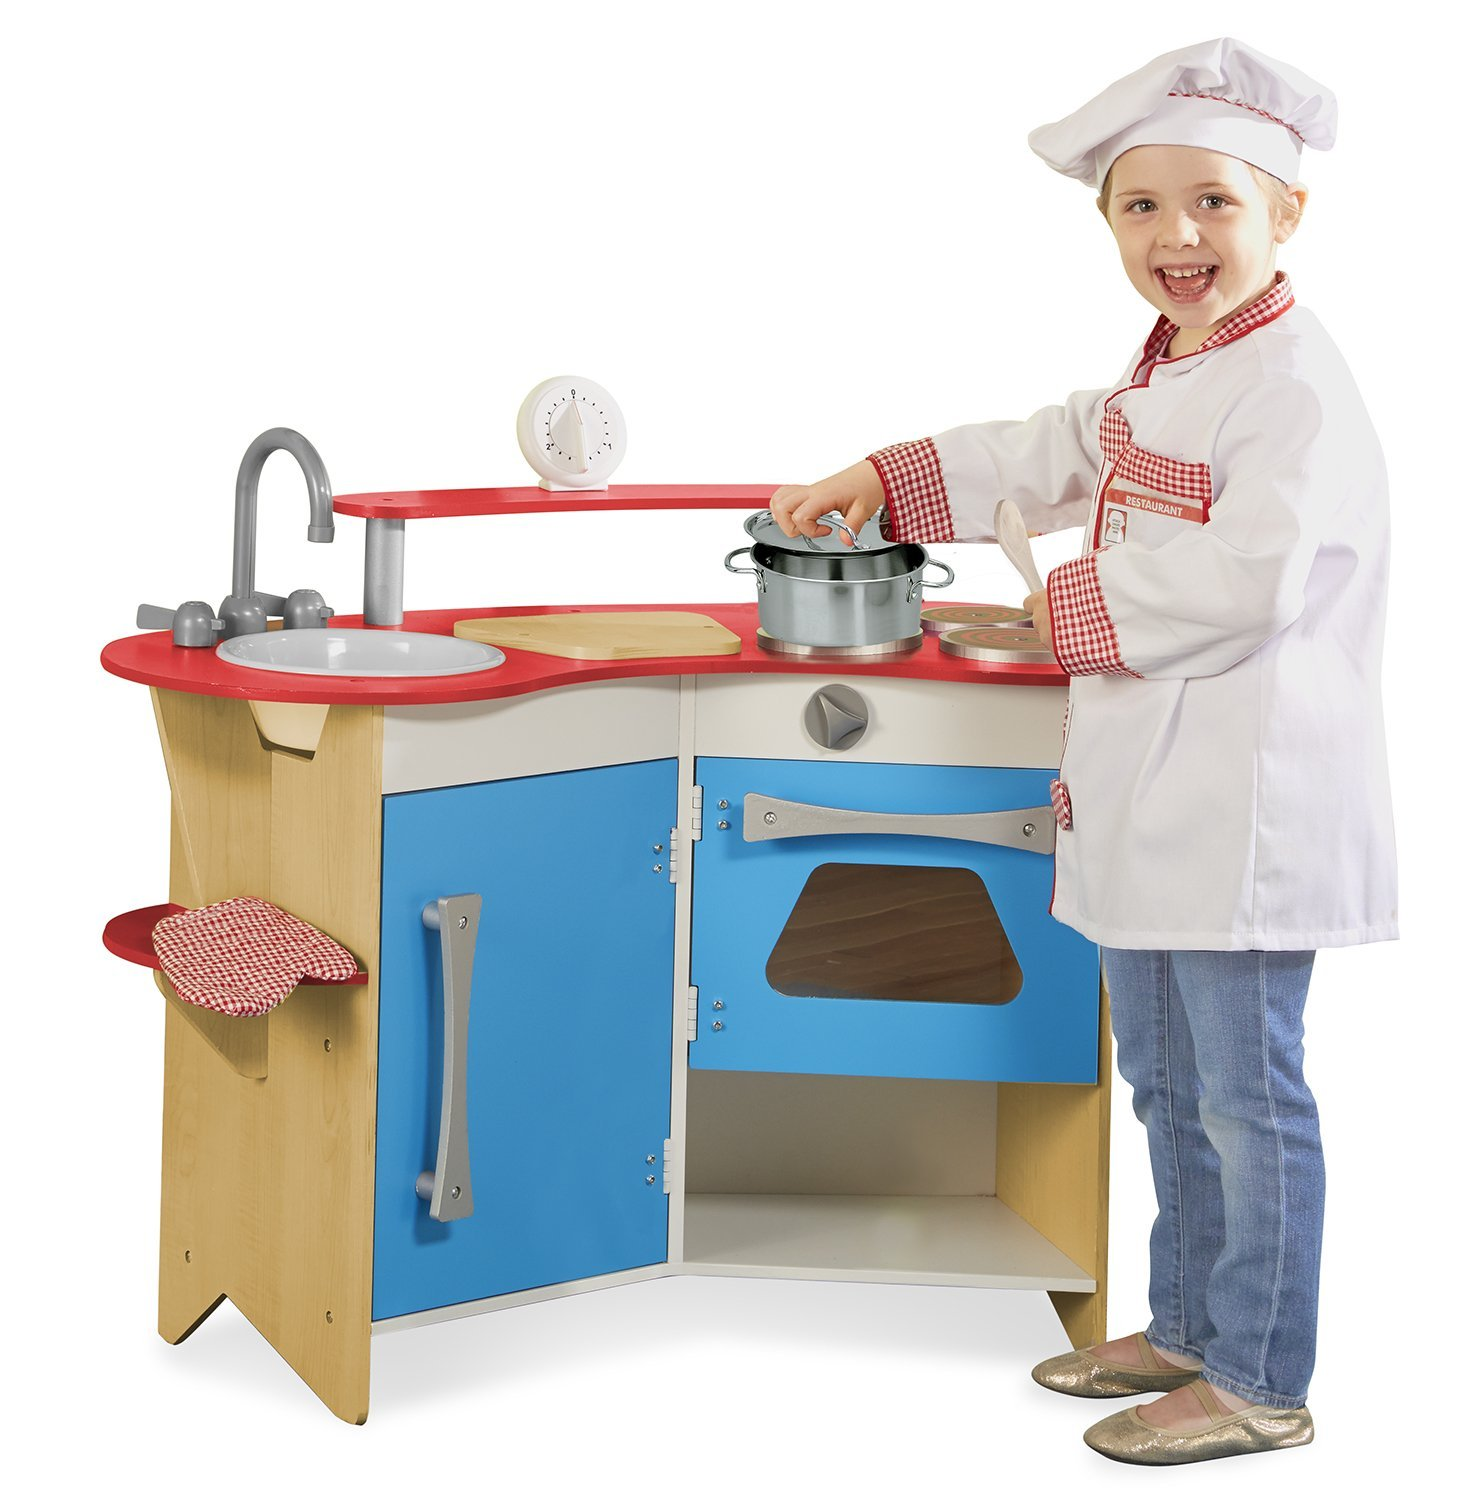 Melissa & Doug Cook\'s Corner Wooden Kitchen Review - Special Magic ...